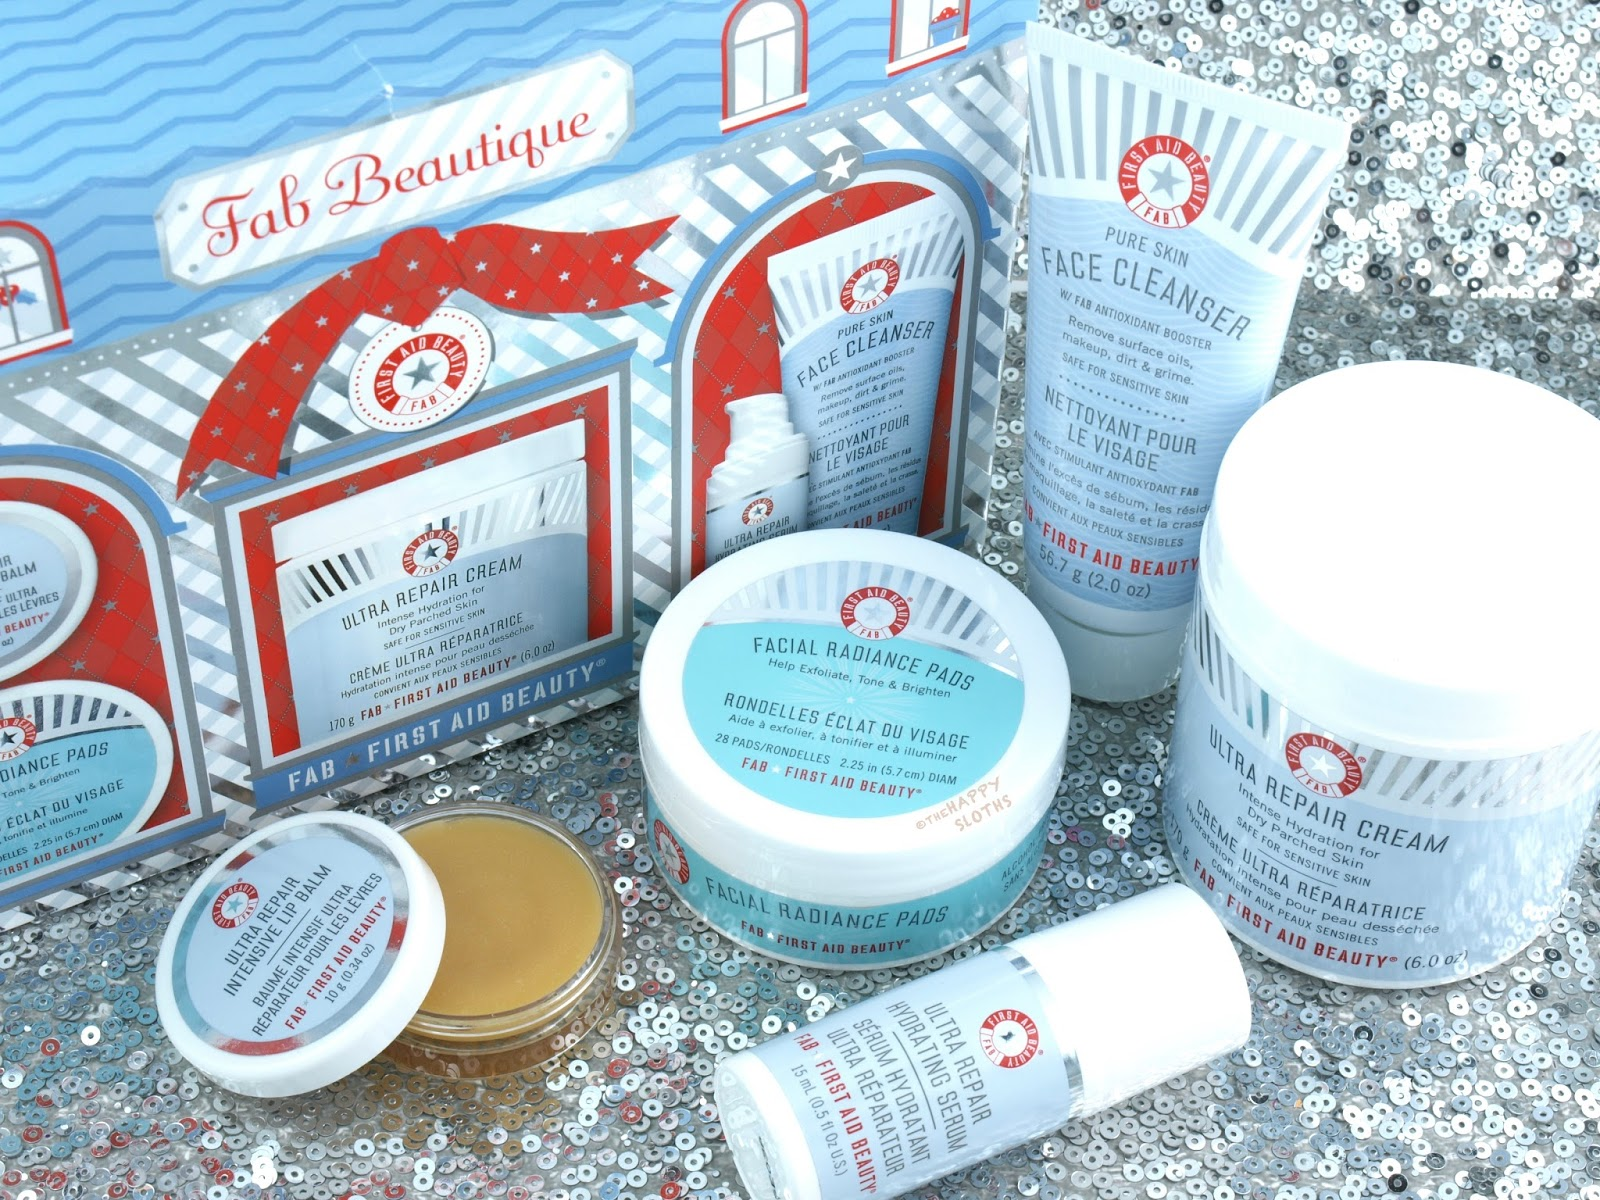 First Aid Beauty Fab Beautique Set